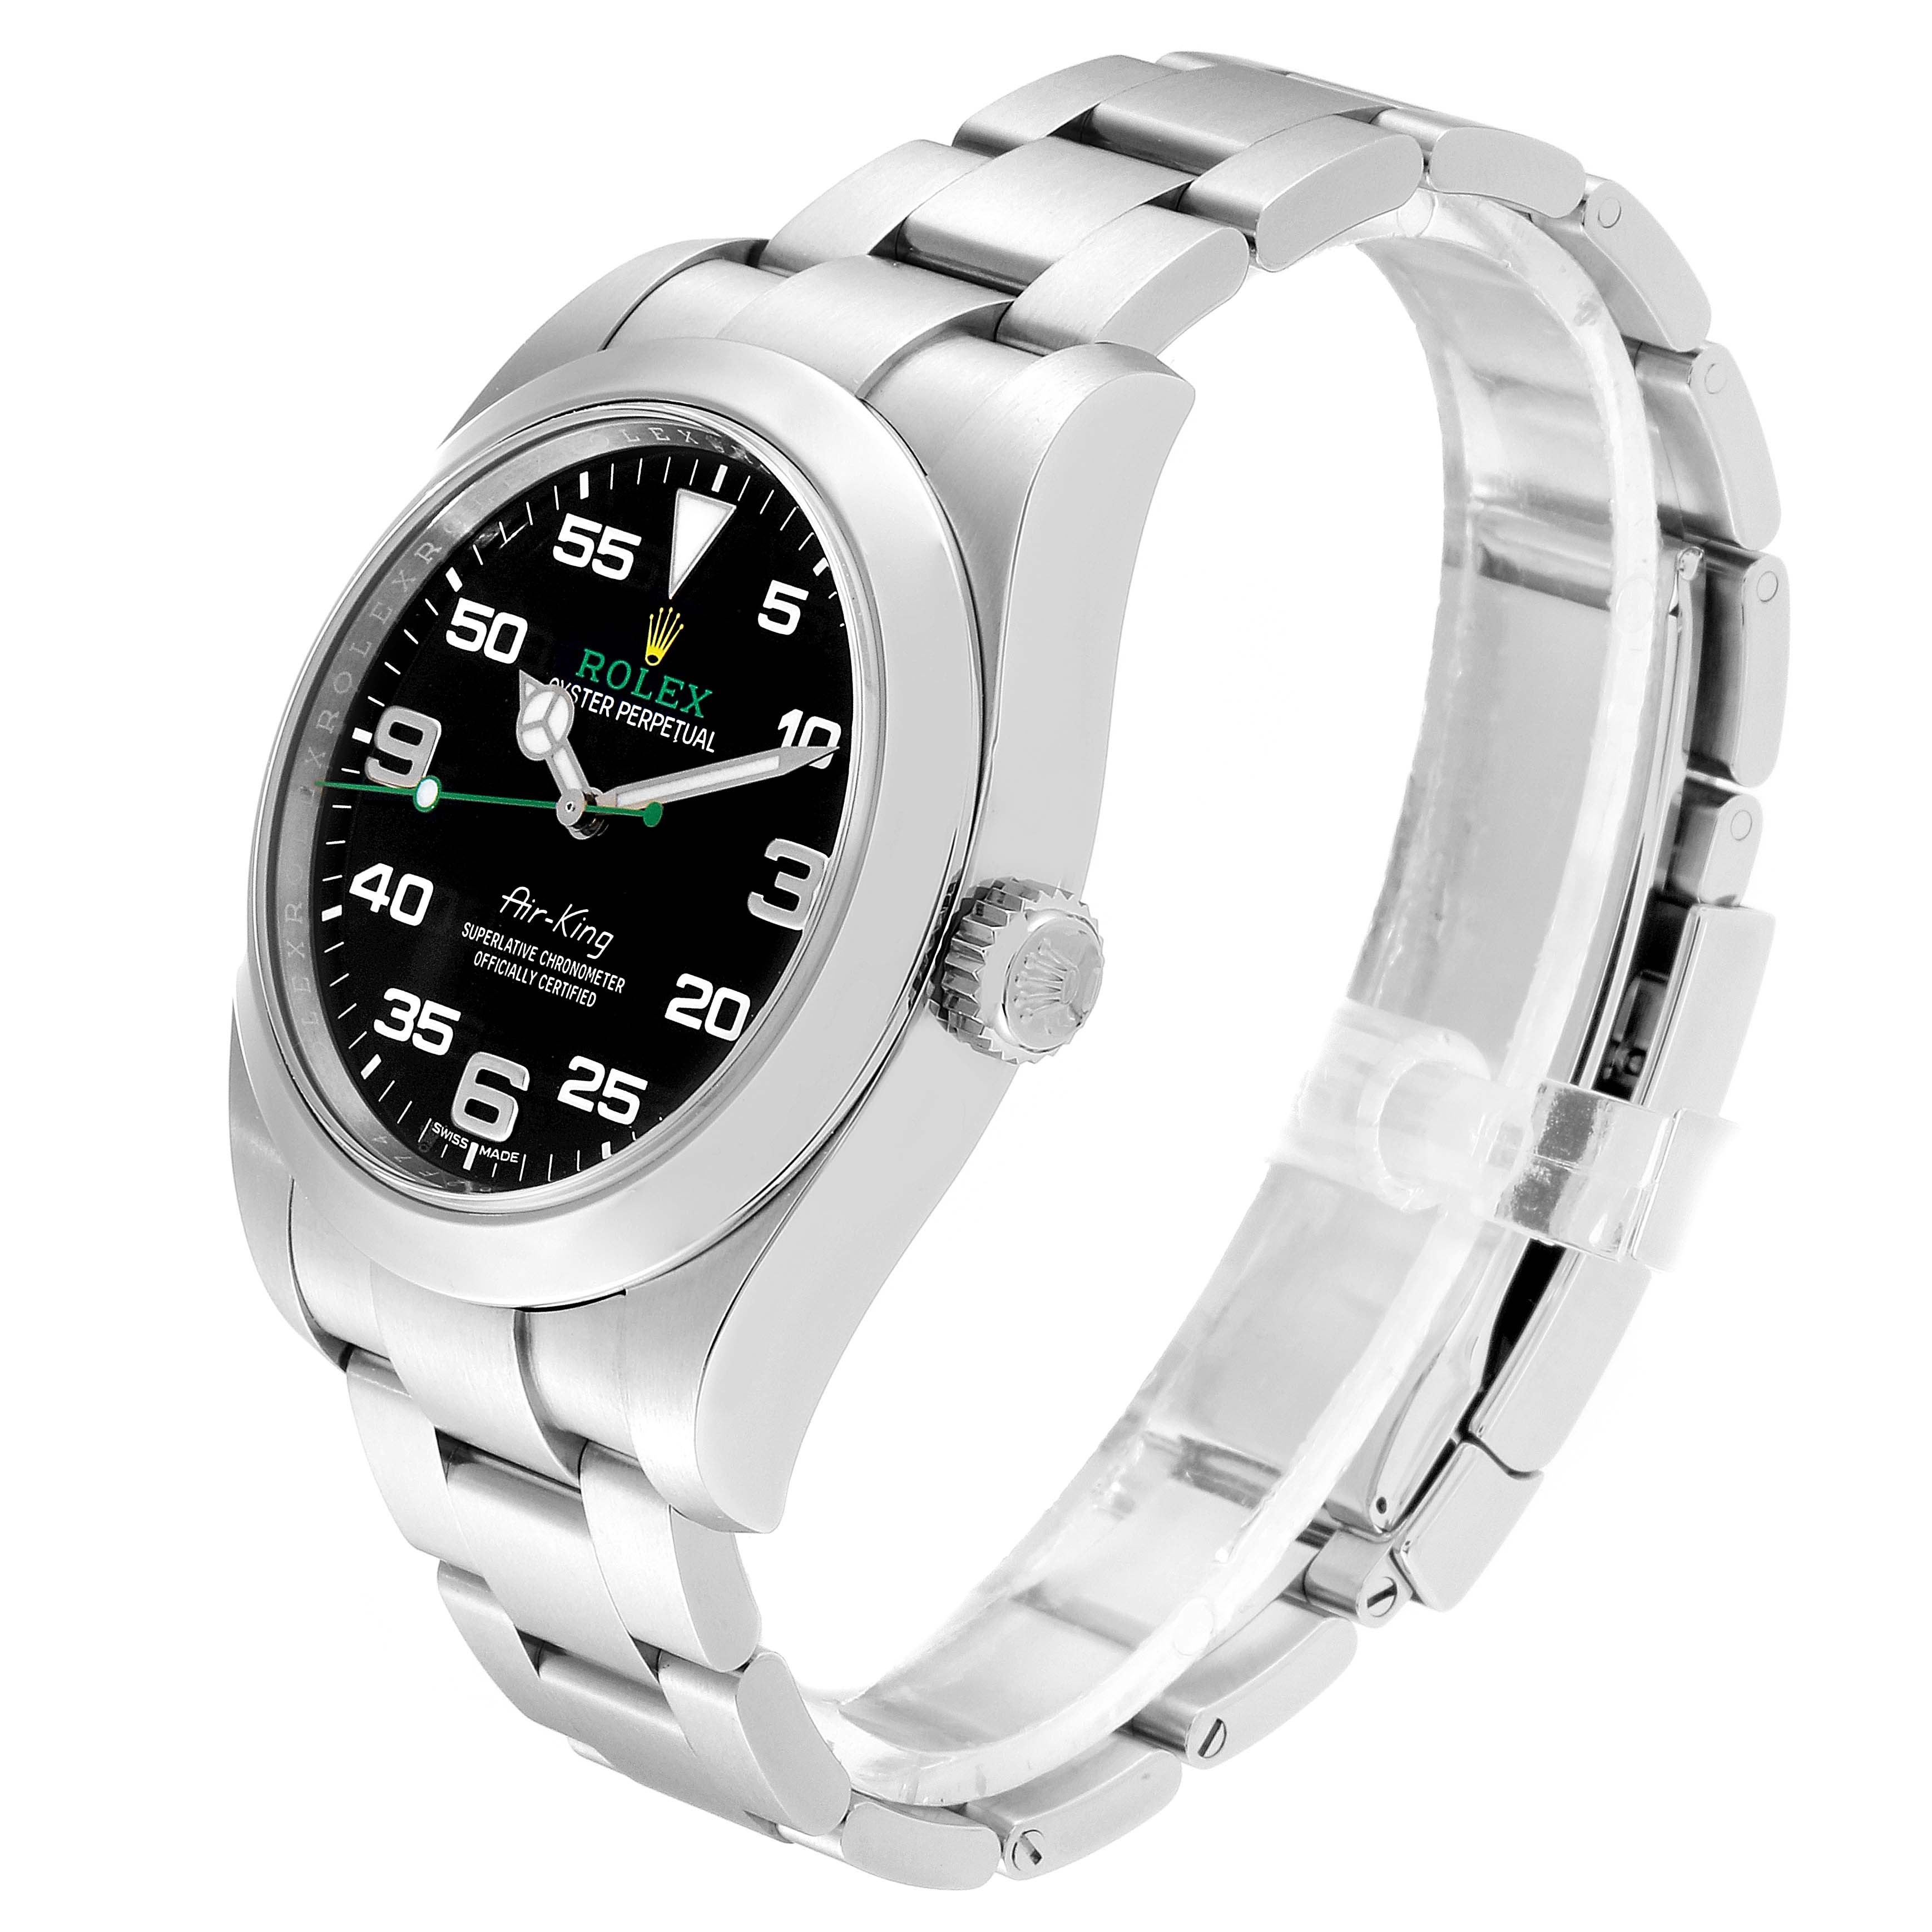 Rolex Oyster Perpetual Air King 40mm Green Hand Steel Mens Watch 116900 SwissWatchExpo